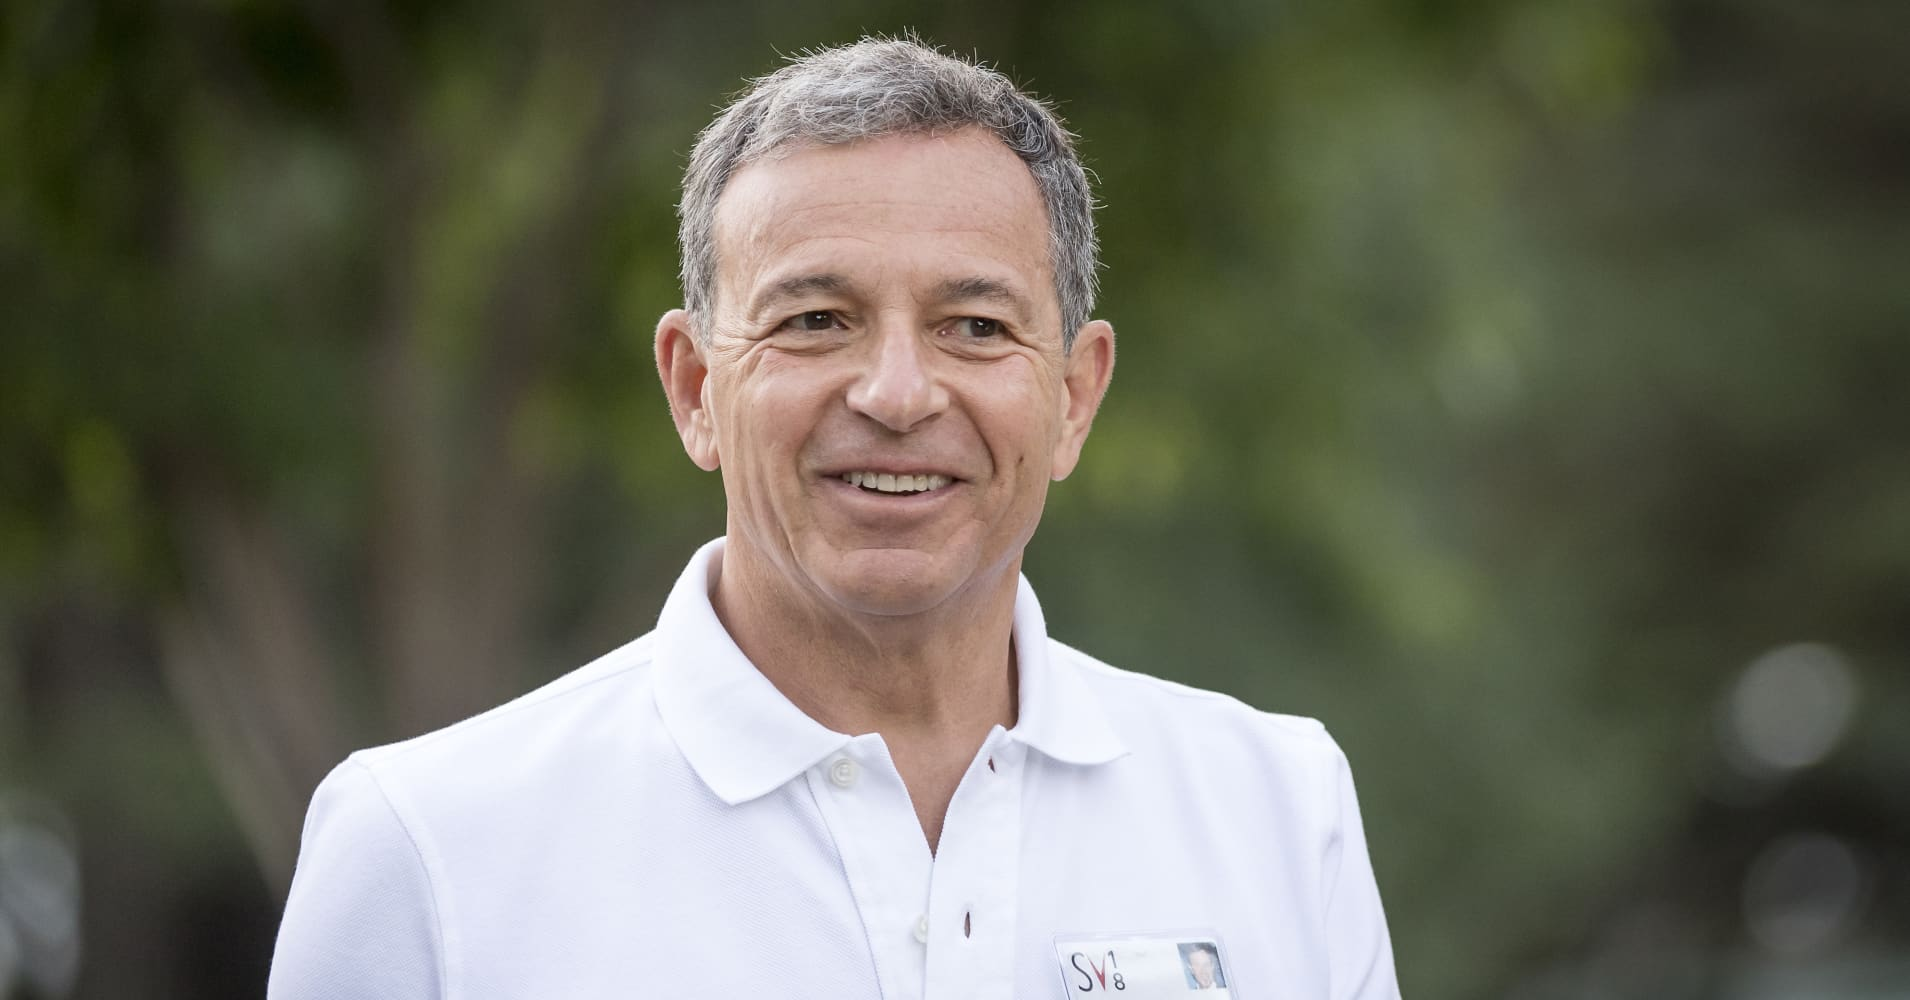 Disney CEO Bob Iger says he will step down in 2021, a succession plan is forming